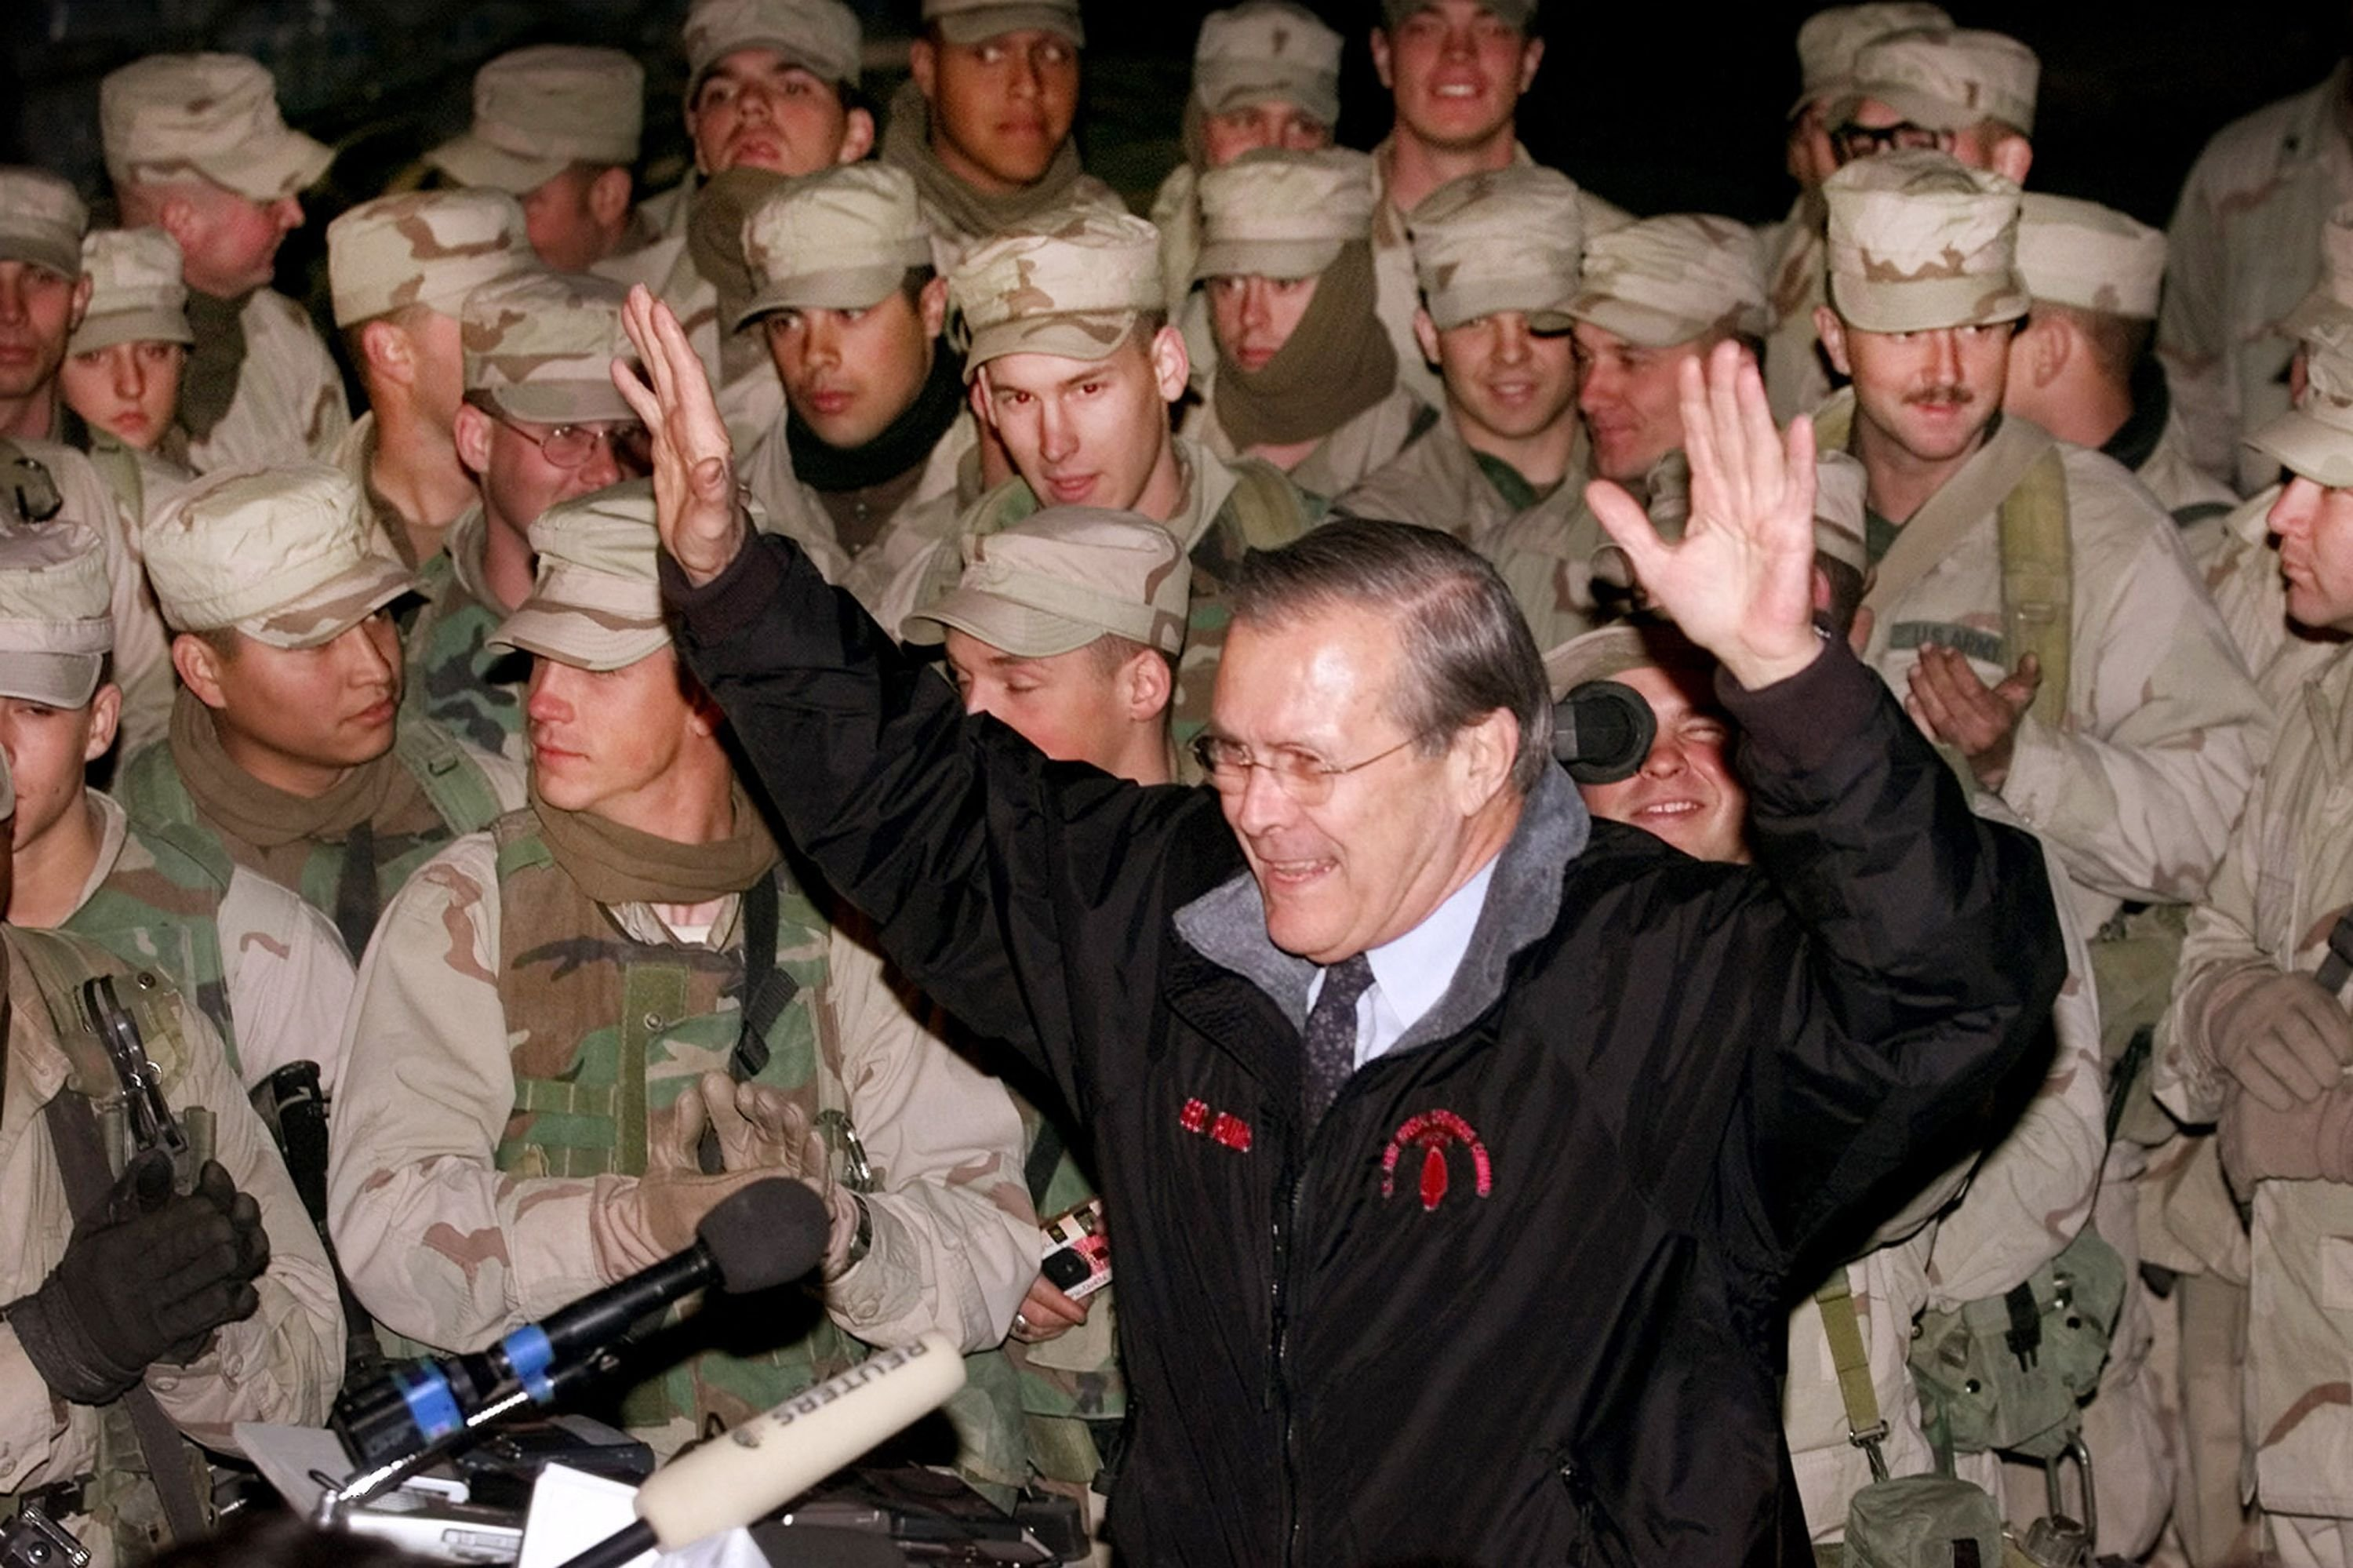 US Secretary of Defense Donald Rumsfeld raising his arms as he concludes his meeting with troops from 1st Battalion 87 at Bagram airfield, Afghanistan, December 18, 2001 (AFP photo)